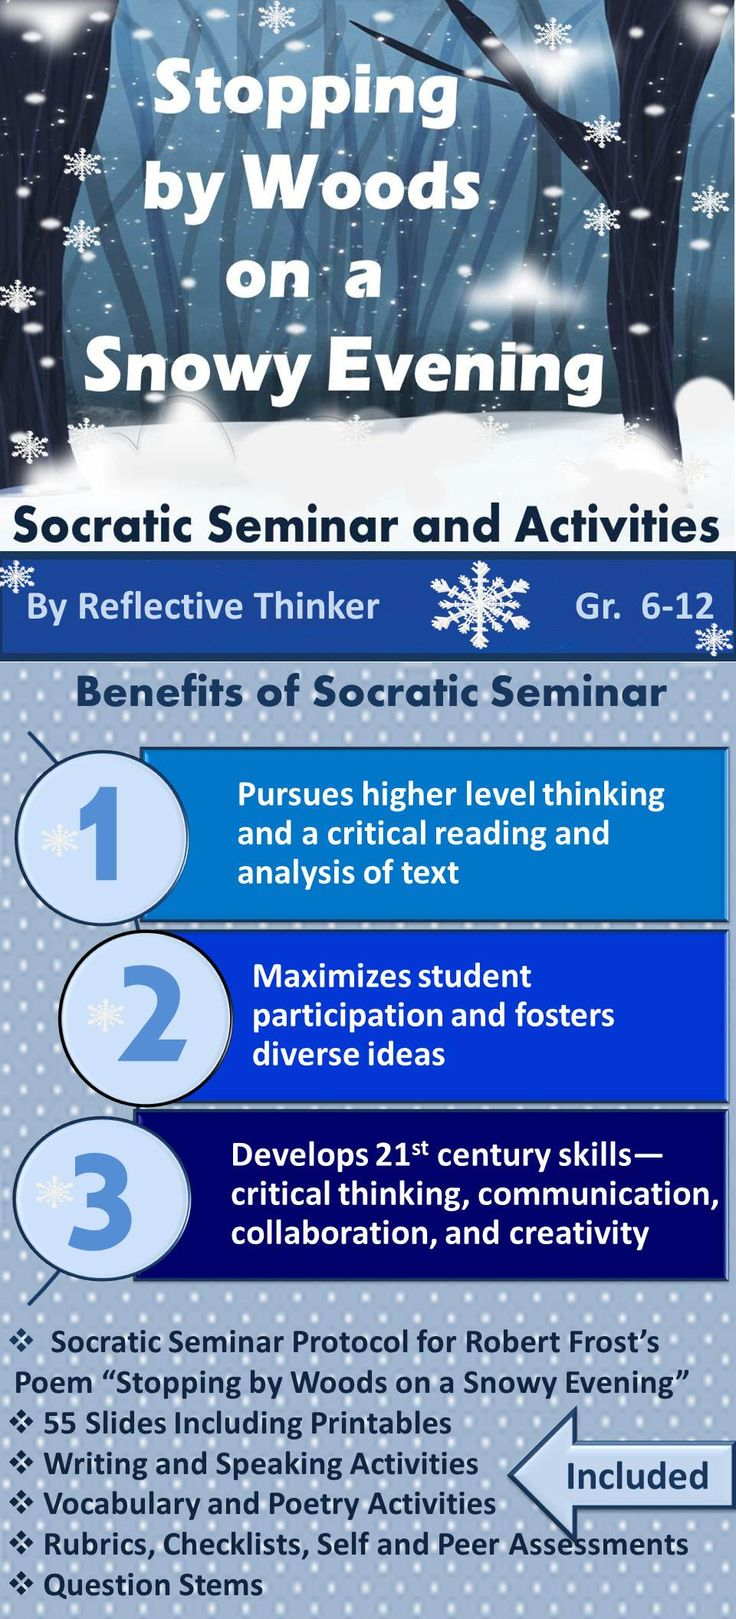 "Socratic seminar is an excellent and engaging way for students to practice higher order thinking skills. This 55-slide PowerPoint resource with printables is a Socratic seminar featuring the poem ""Stopping by Woods on a Snowy Evening"" by Robert Frost. This resource includes a well-organized protocol for conducting a formal discussion or Socratic seminar based on Frost's poem. #Socraticseminar #poetry #StoppingbyWoodsonaSnowyEvening #RobertFrost"